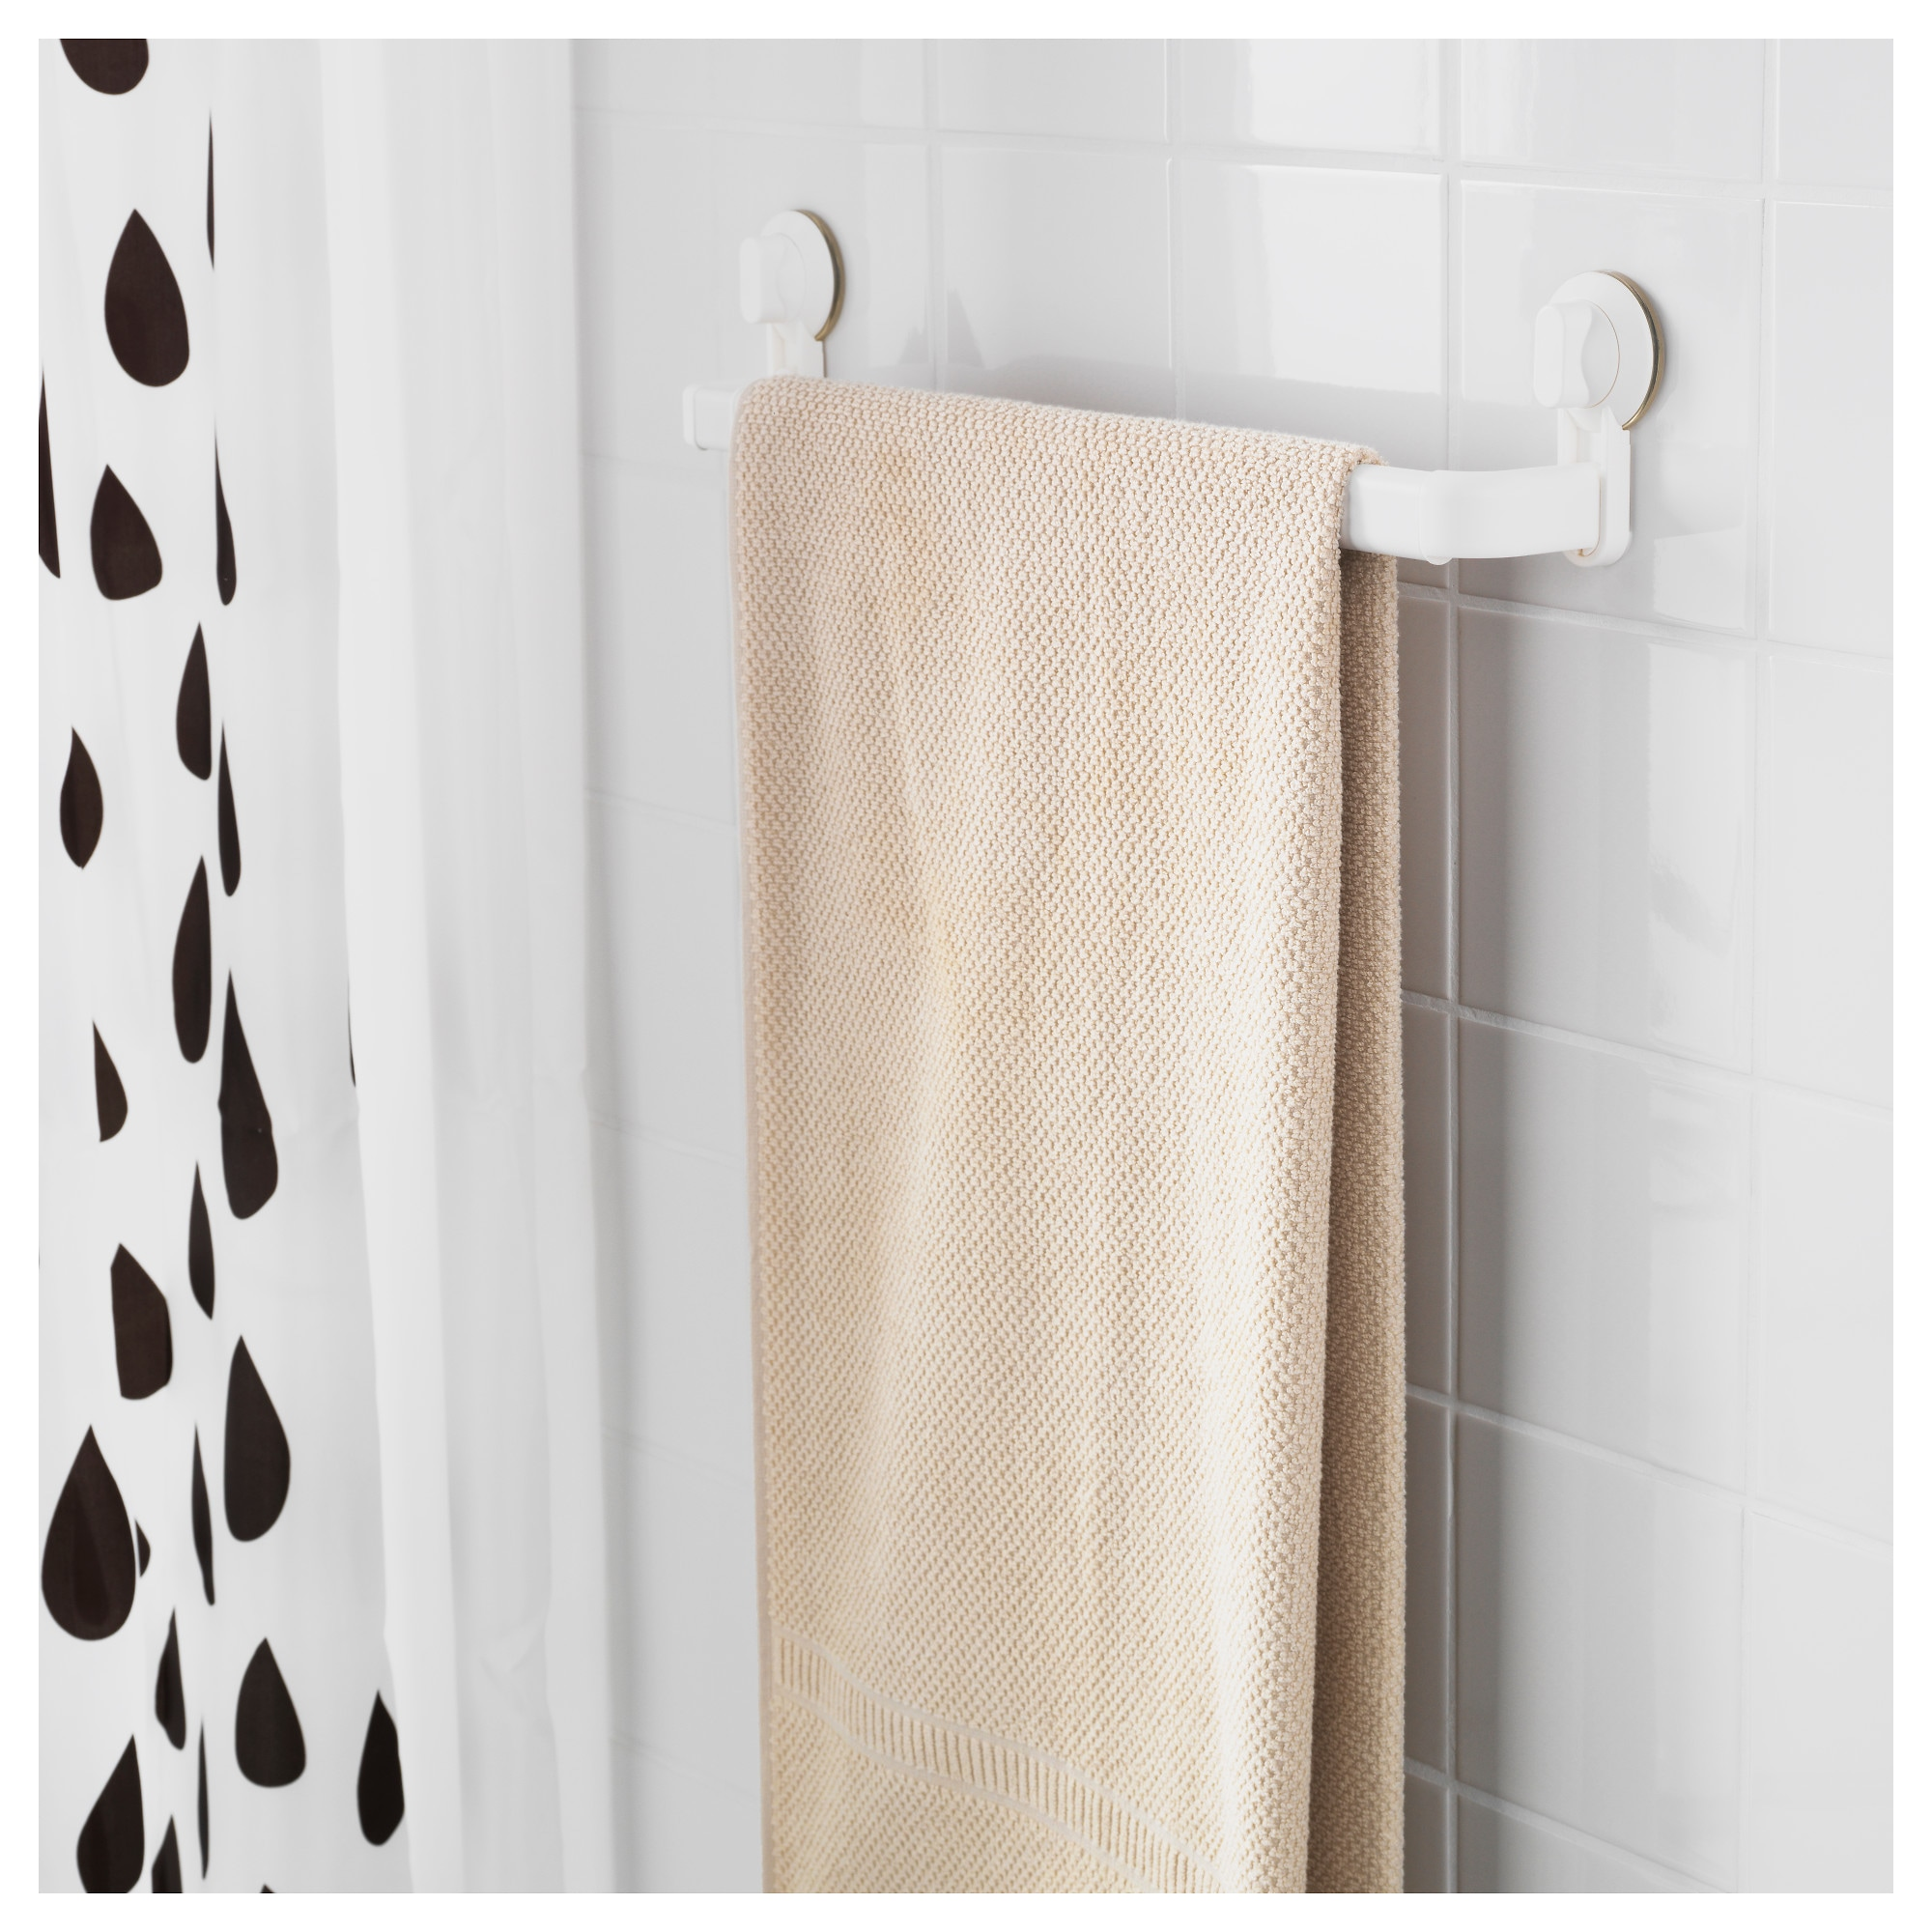 STUGVIK Towel rack with suction cup - IKEA